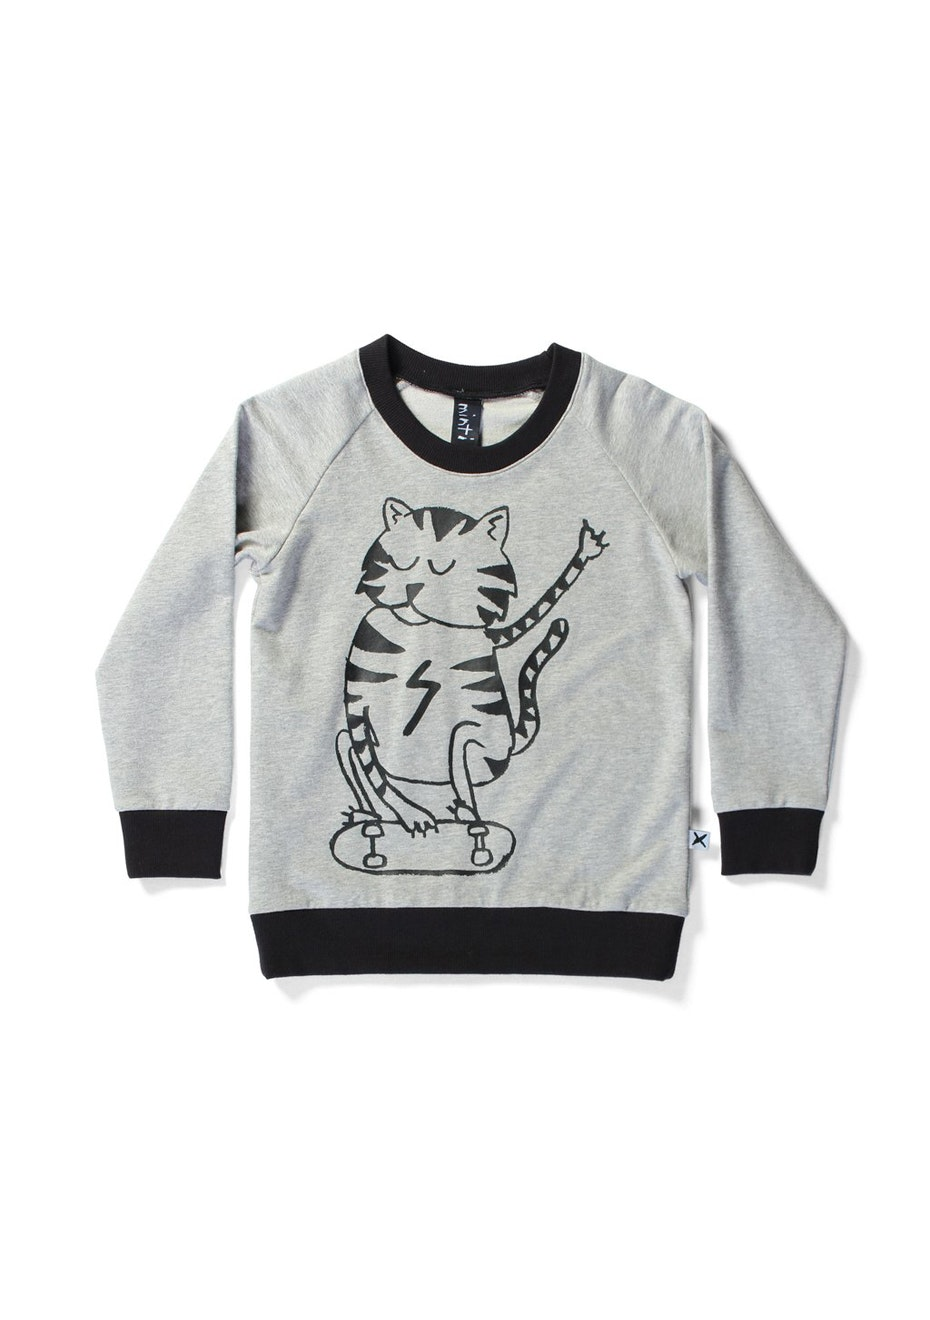 Minti - Thrasher Cat - Summer Crew - Boys - Grey/Black